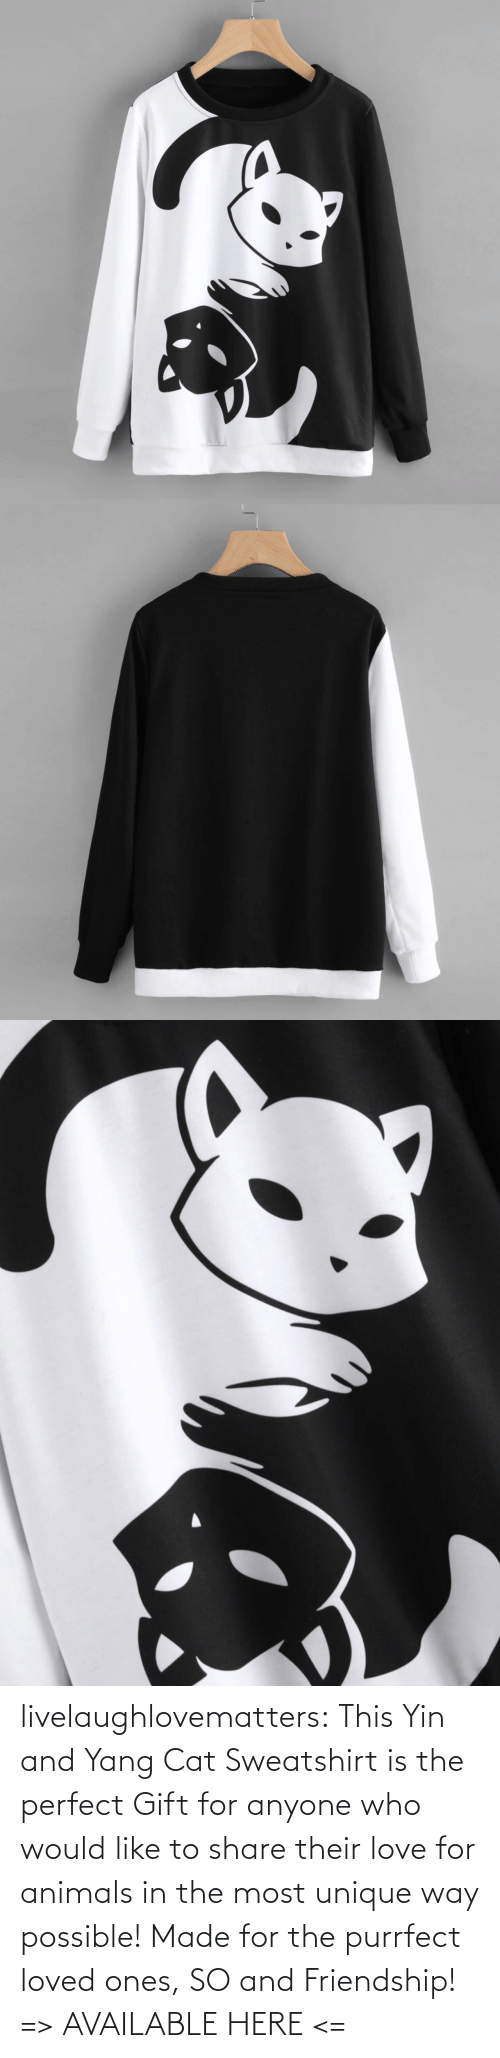 share: livelaughlovematters:  This Yin and Yang Cat Sweatshirt is the perfect Gift for anyone who would like to share their love for animals in the most unique way possible! Made for the purrfect loved ones, SO and Friendship!  => AVAILABLE HERE <=